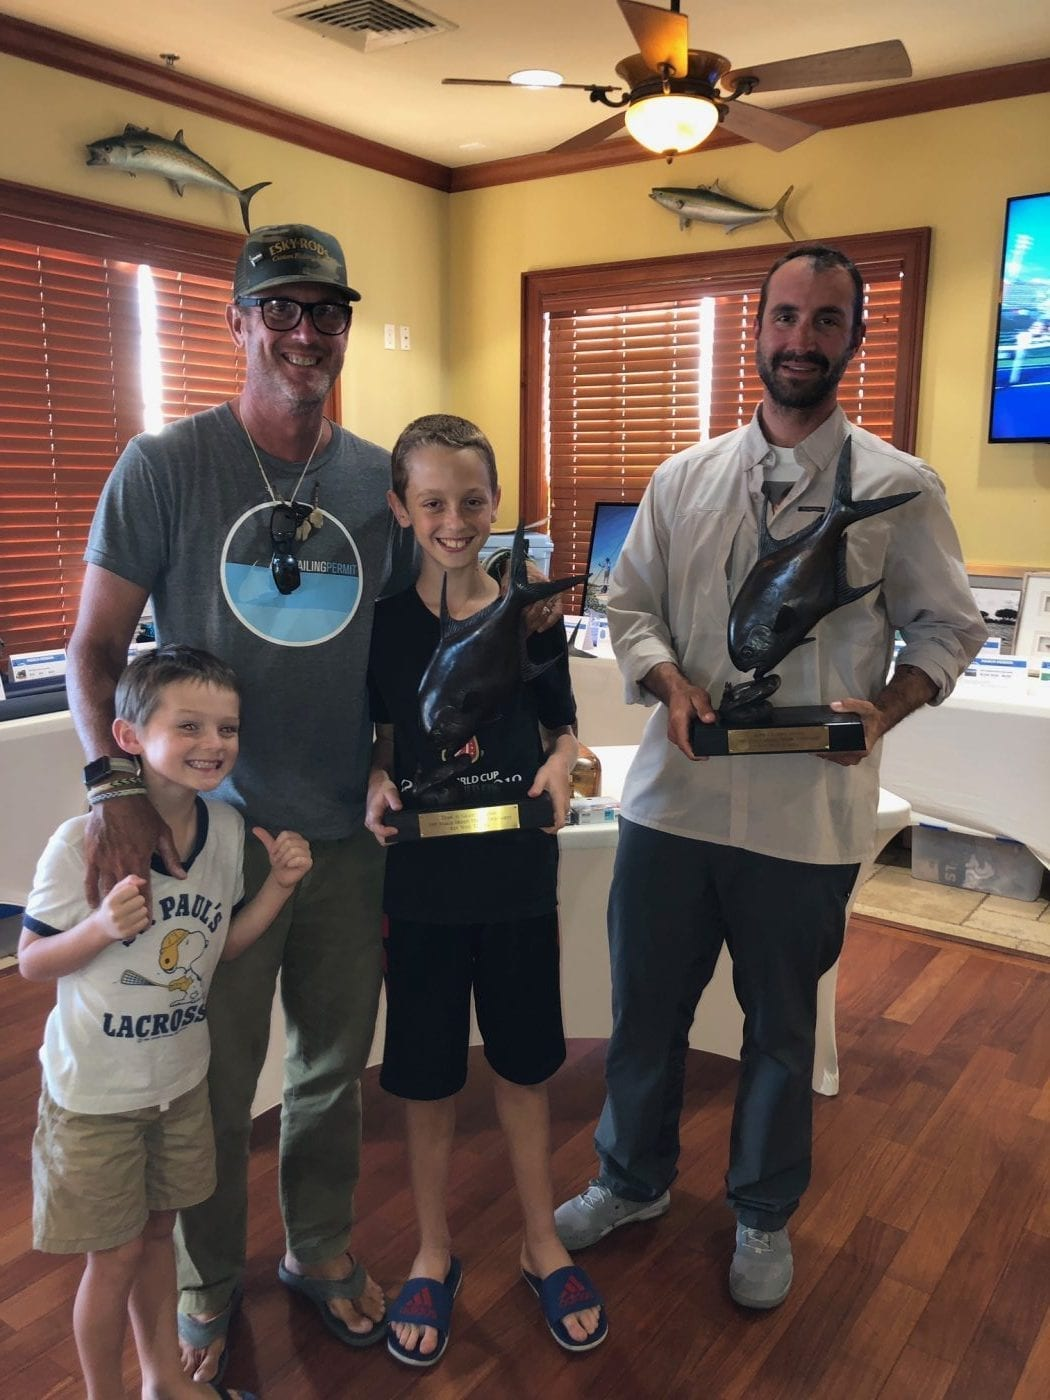 Work hard, earn trophies: John O'Hearn fathers some good lessons in to his kids at the 2019 March Merkin. Photo Loren Rea